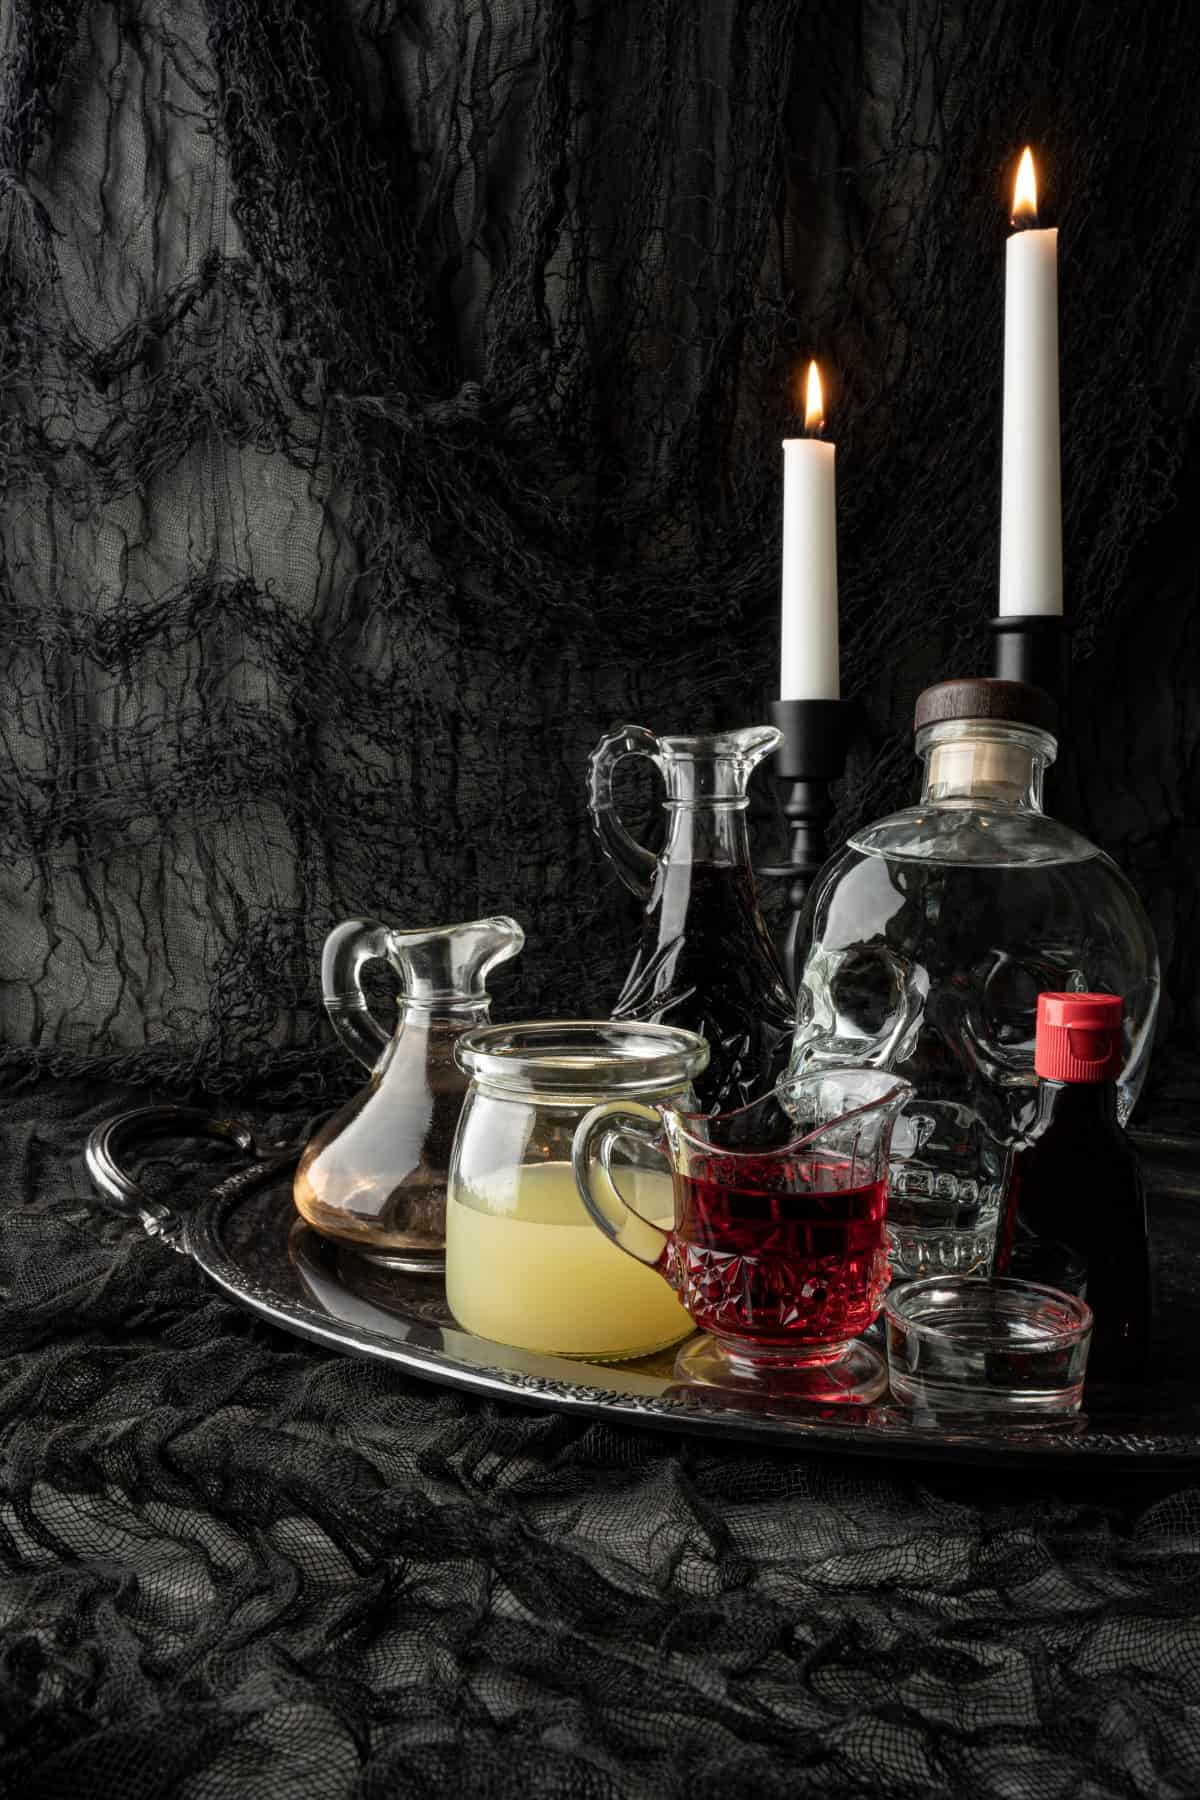 Ingredients for Dracula's Kiss - Halloween Cocktail